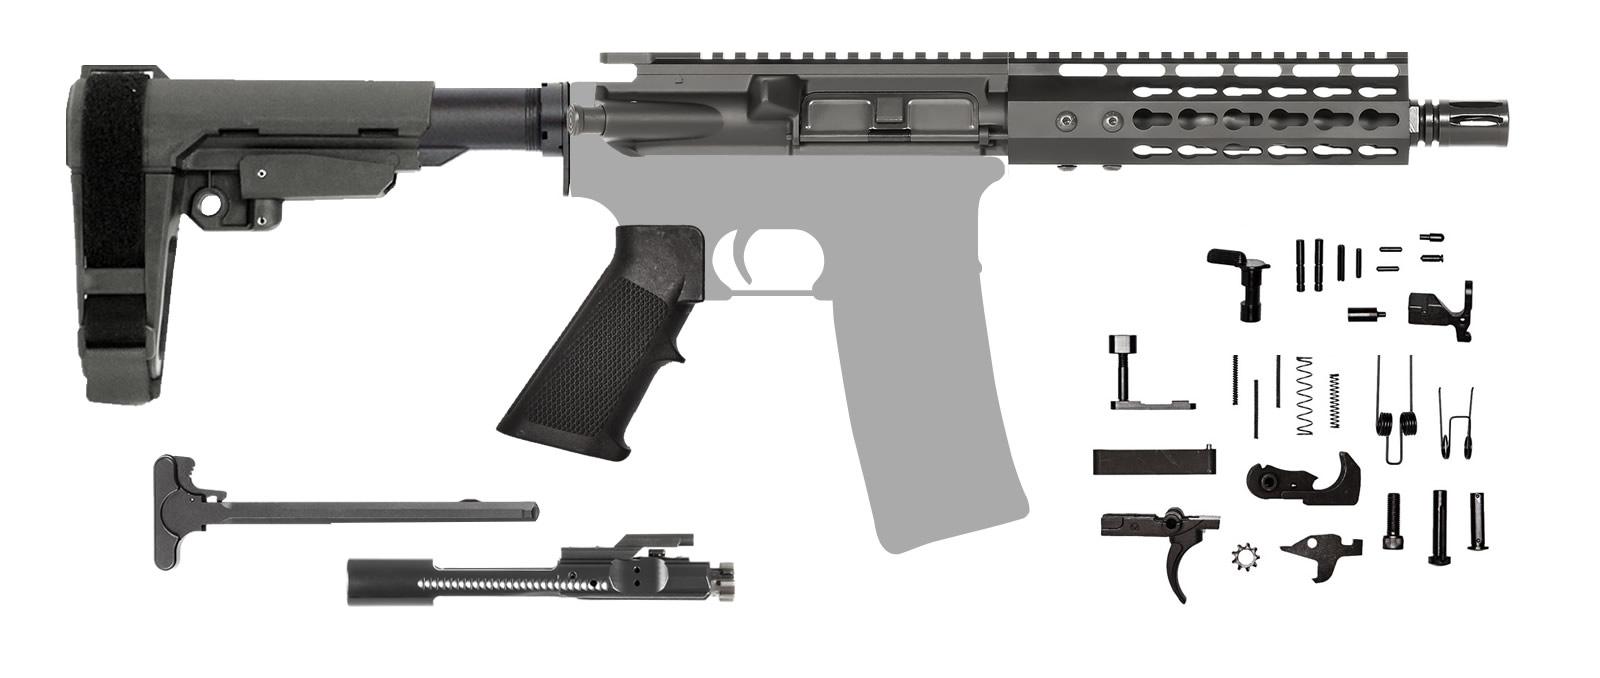 AR-15 AR Pistol Kit – 7.5 Inch / 300 AAC Blackout / Keymod / SBA3